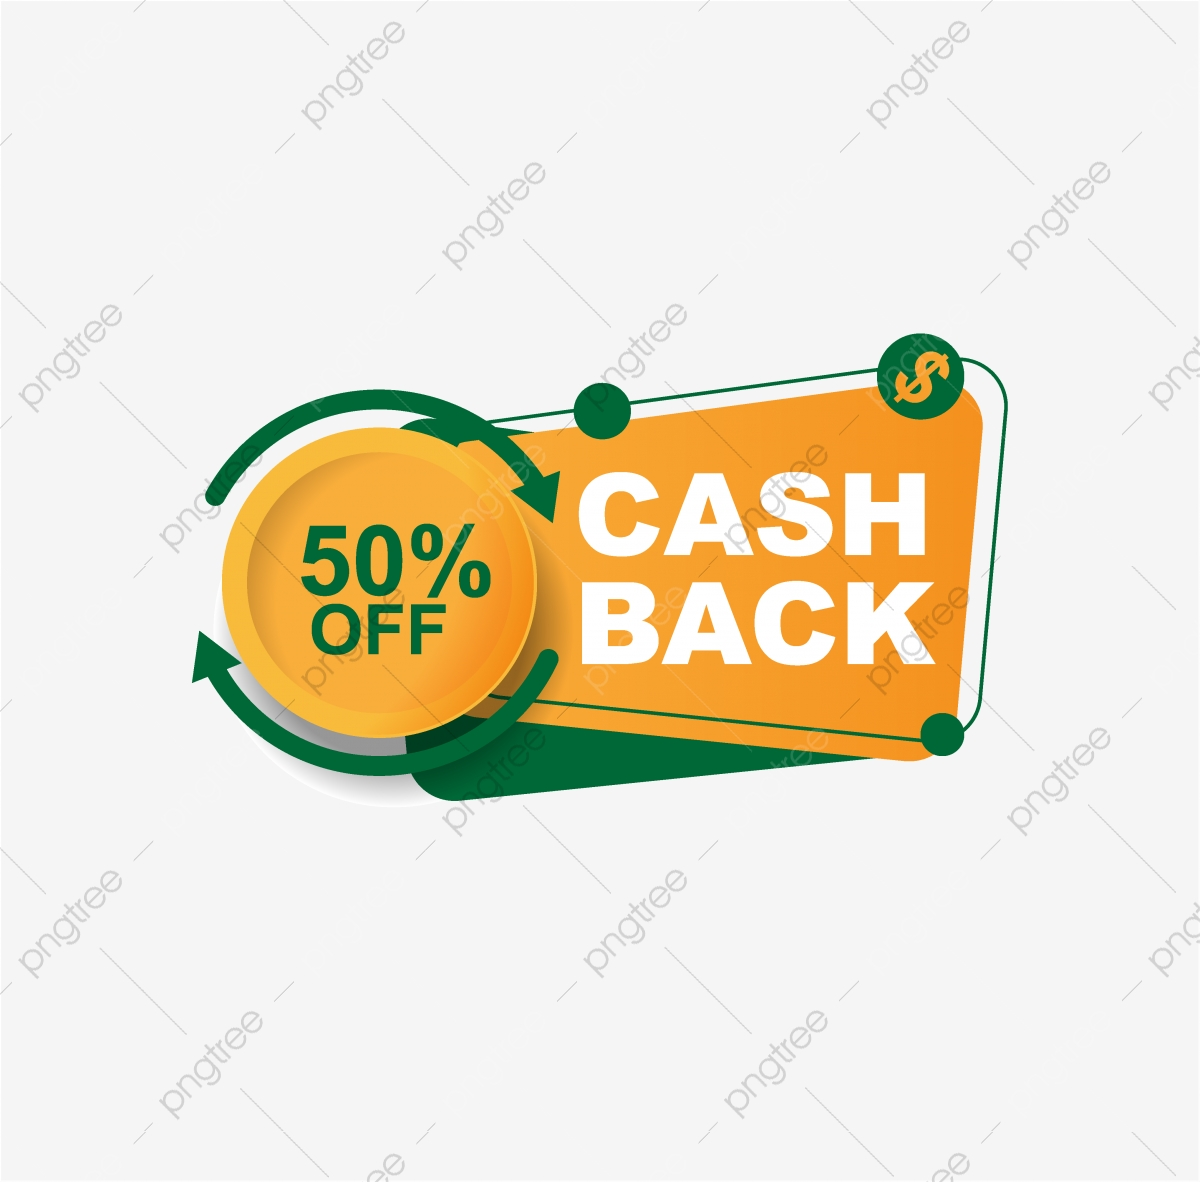 cashback png vector psd and clipart with transparent background for free download pngtree https pngtree com freepng modern label cashback for sale banner 5390512 html